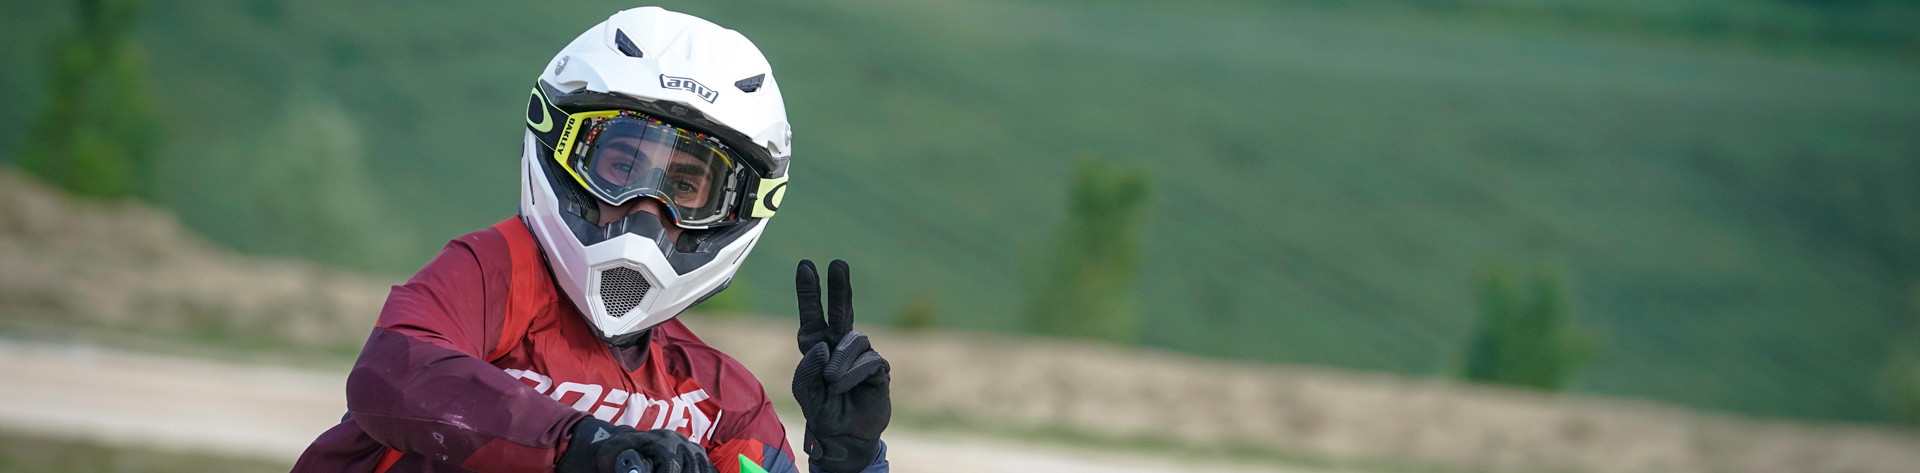 AGV Riding style - Off-road